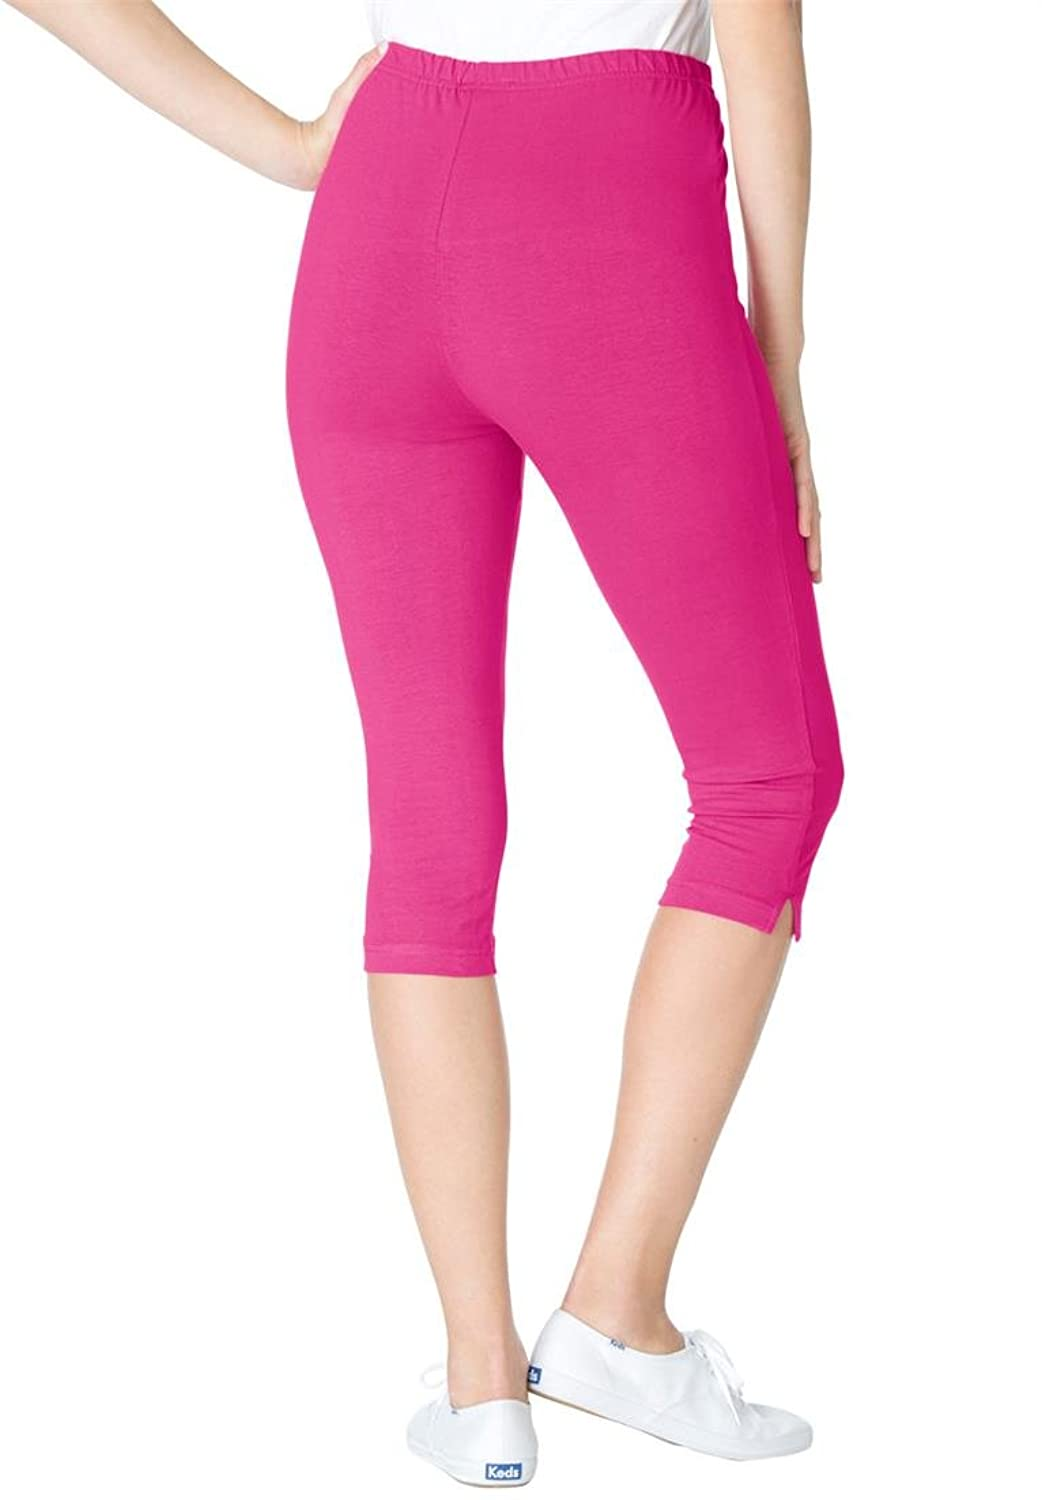 Women's Plus Size Petite Leggings, Capris In Stretch Knit at ...